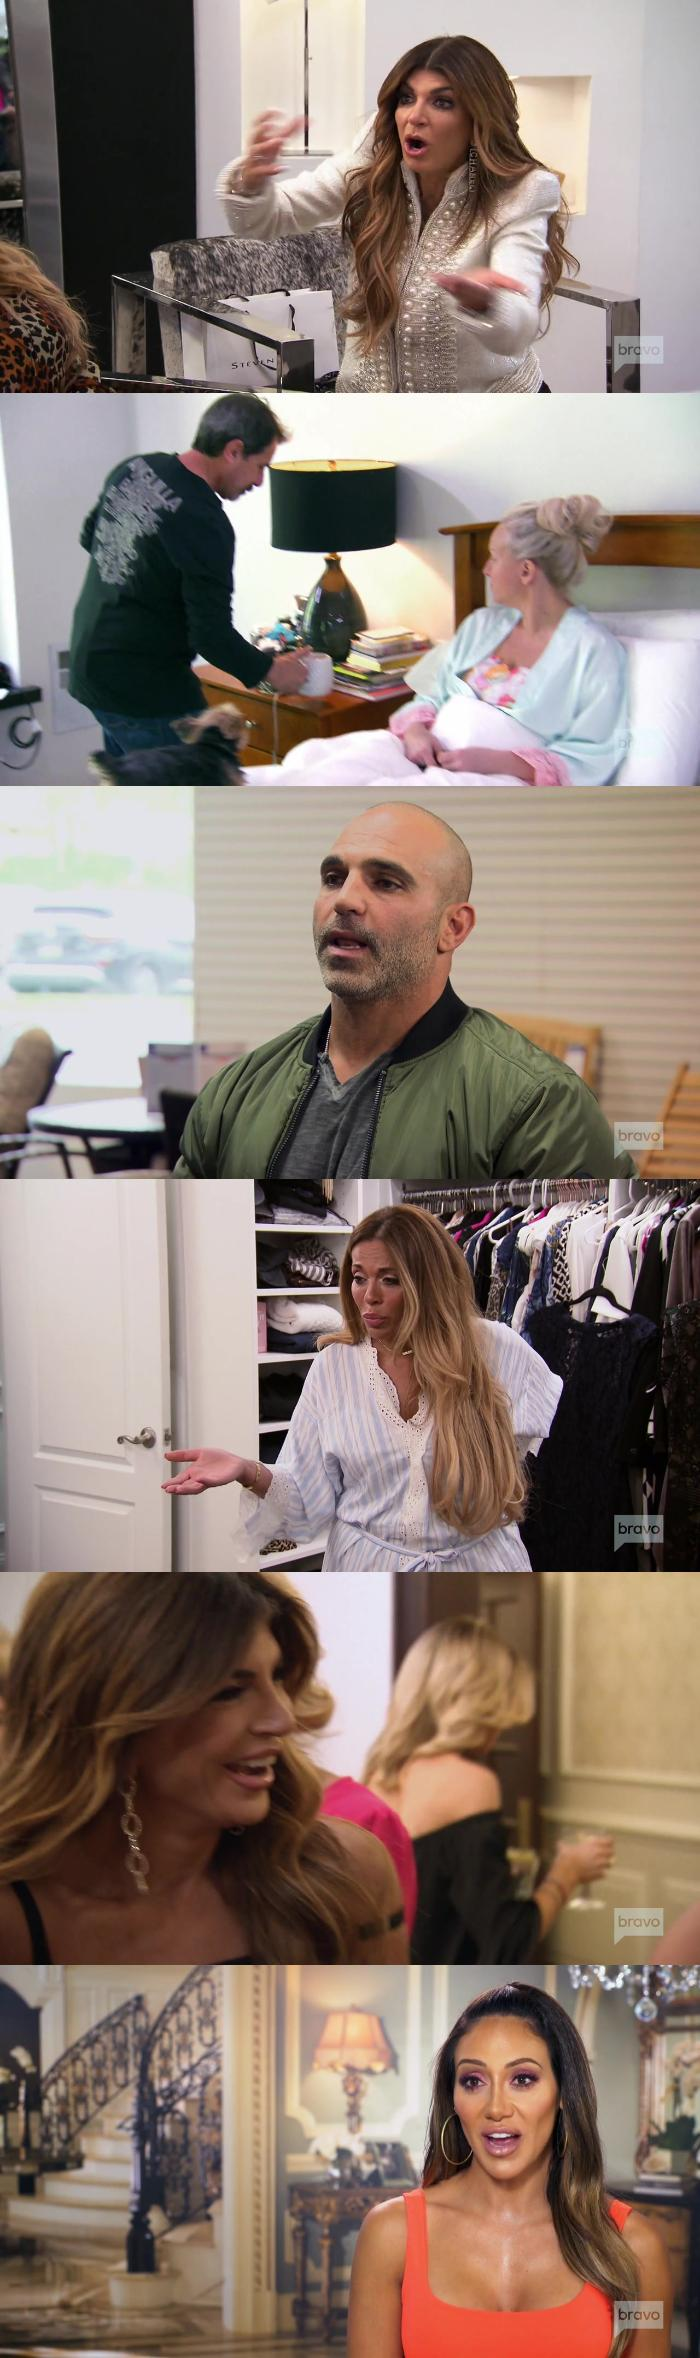 The real housewives of new jersey s10e09 internal 720p web h264-trump